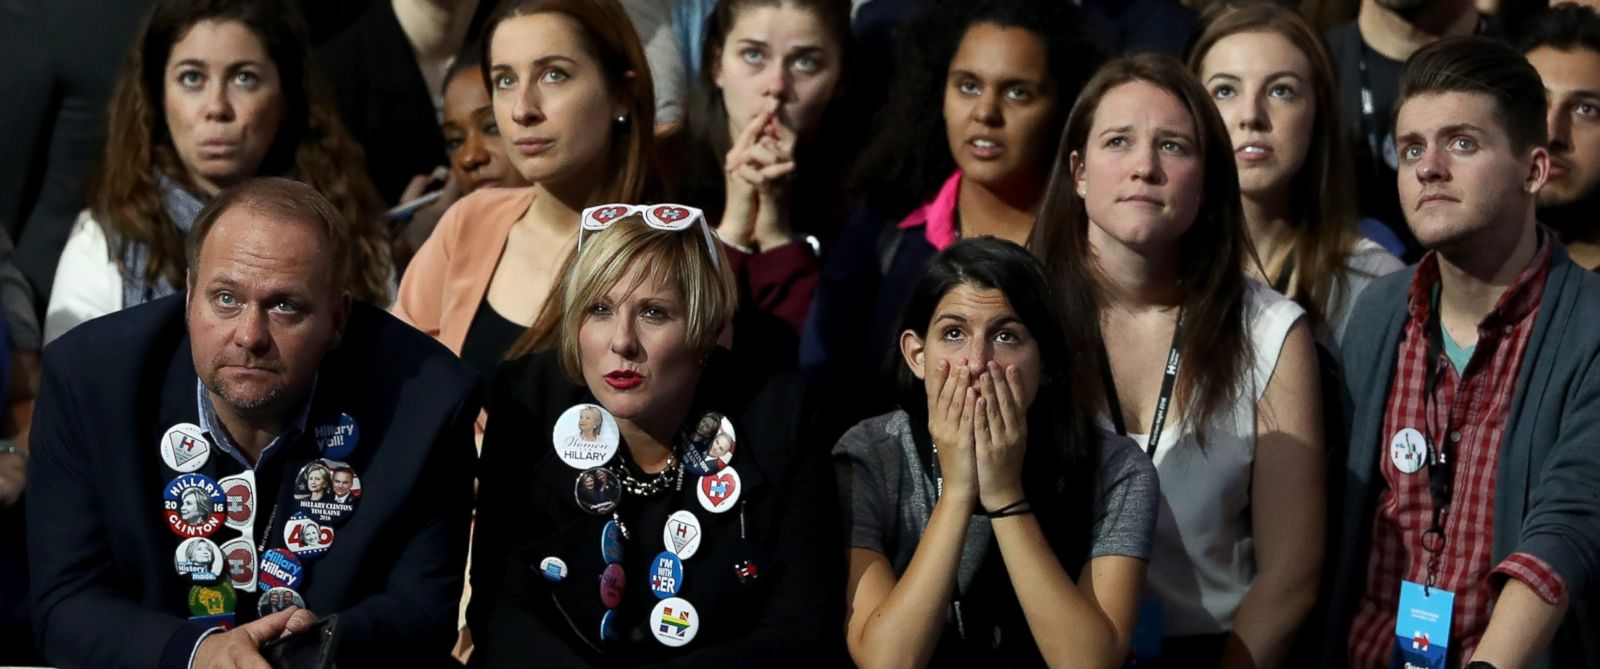 PHOTO: Supporters of Democratic Presidential candidate Hillary Clinton watching early results at the Jacob K. Javits Convention Center November 8, 2016 in New York City.